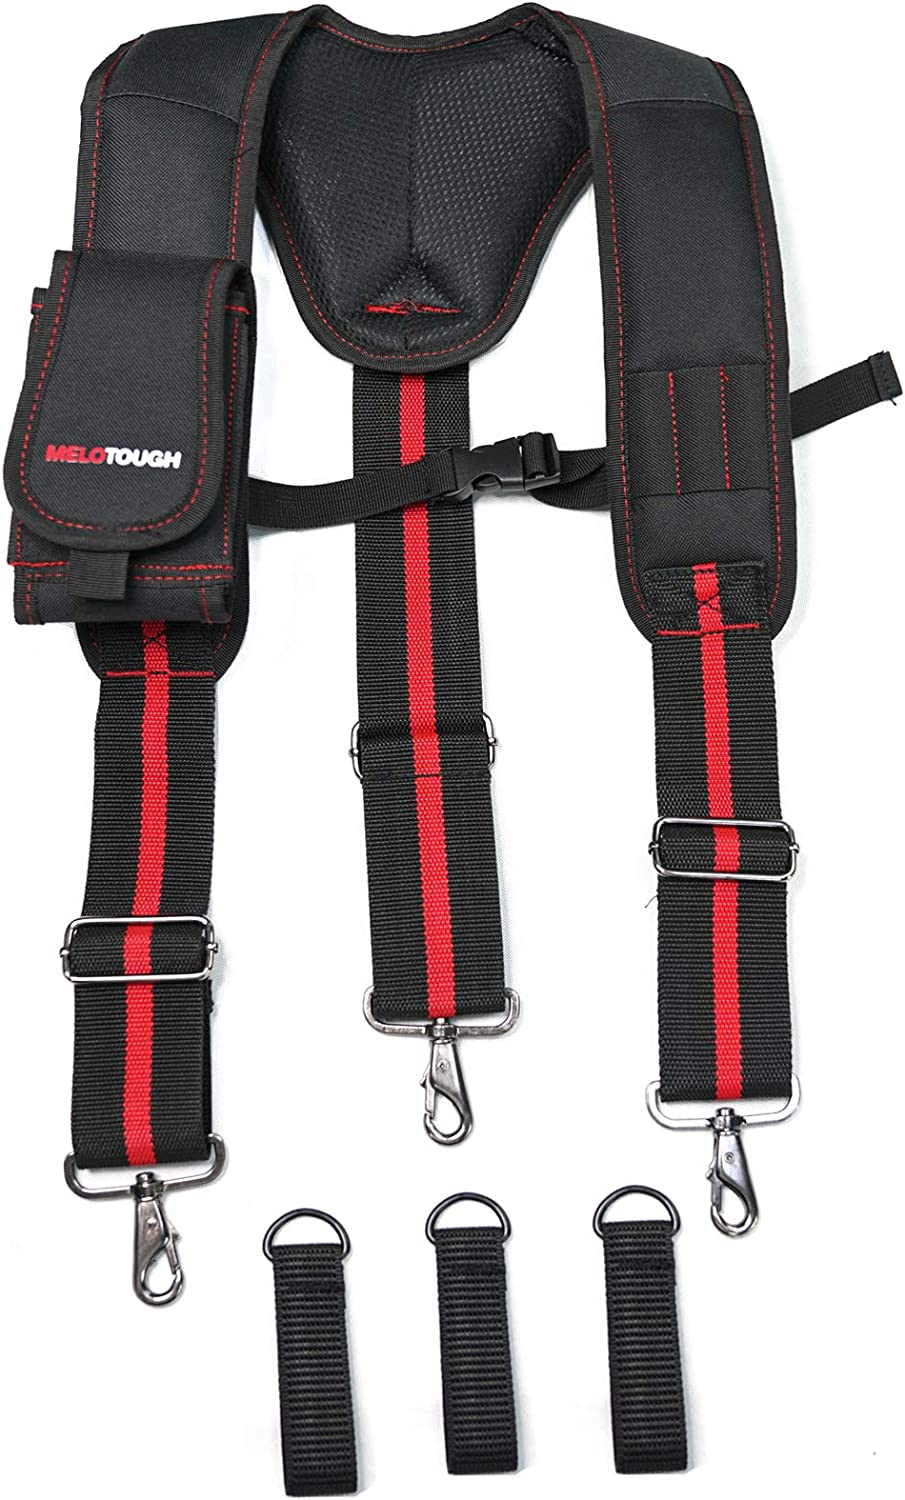 Heavy Duty Work Max 89% OFF Suspenders Washington Mall Tool with H 3 Belt Trigger